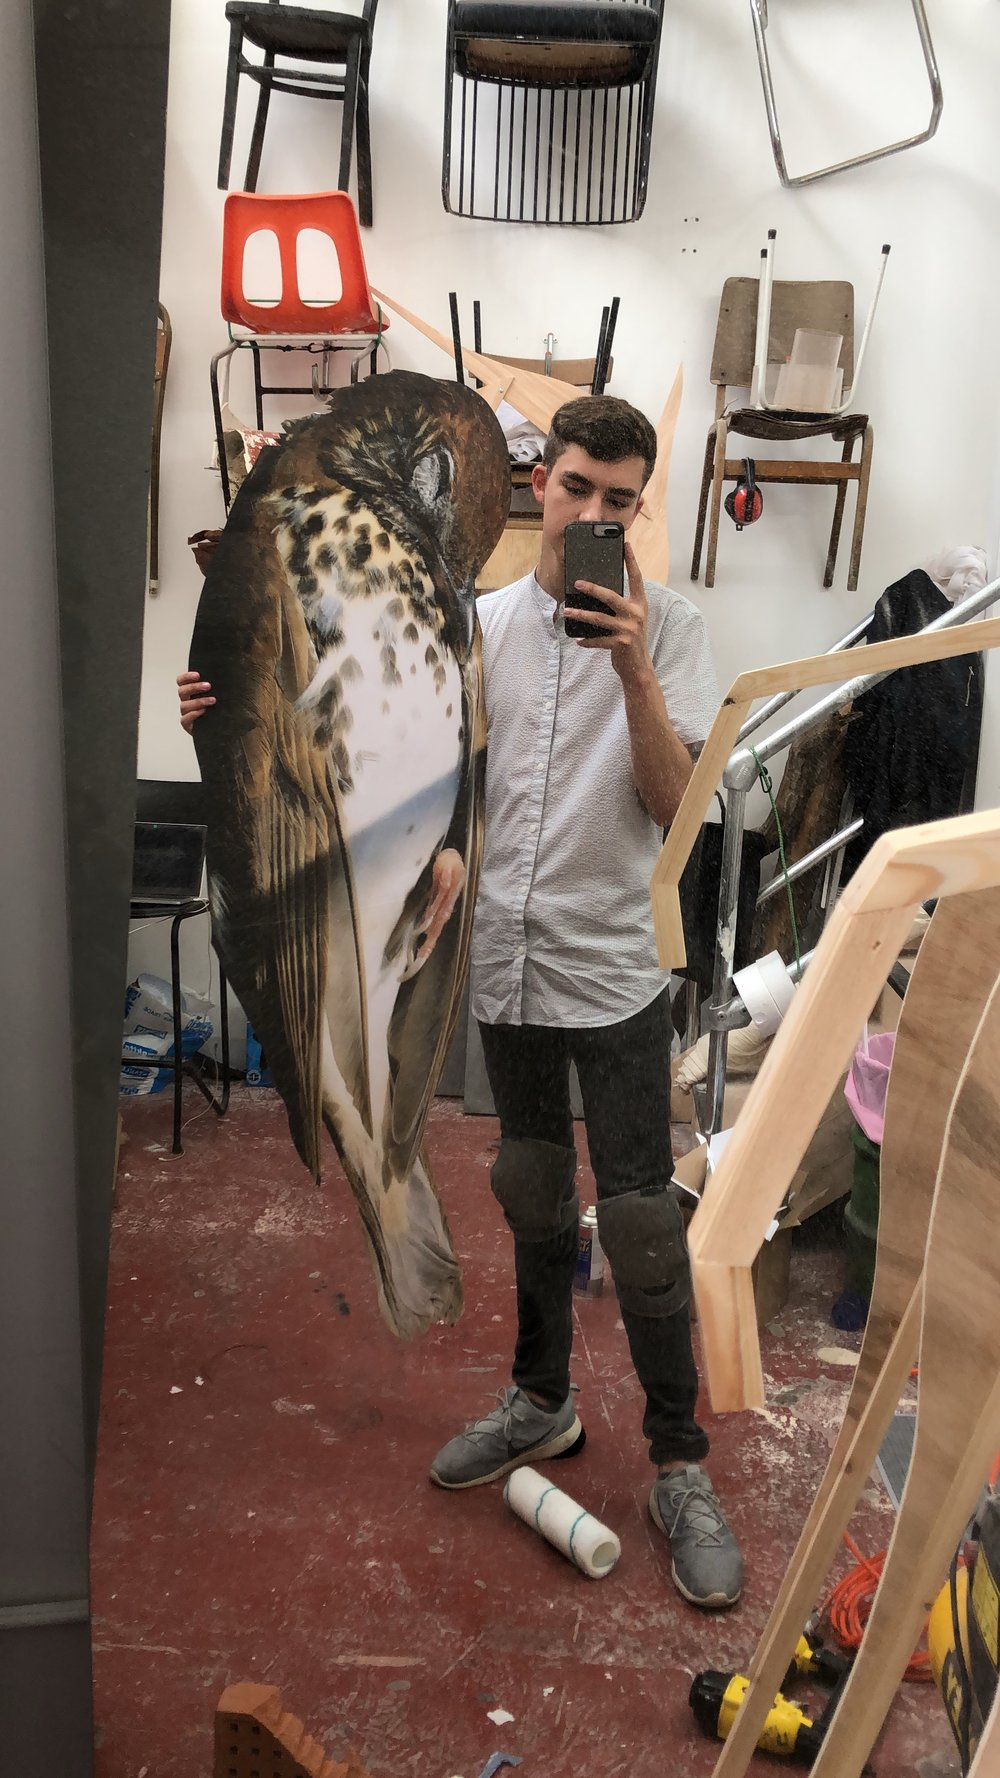 Me with a giant bird we used for a prop the next day